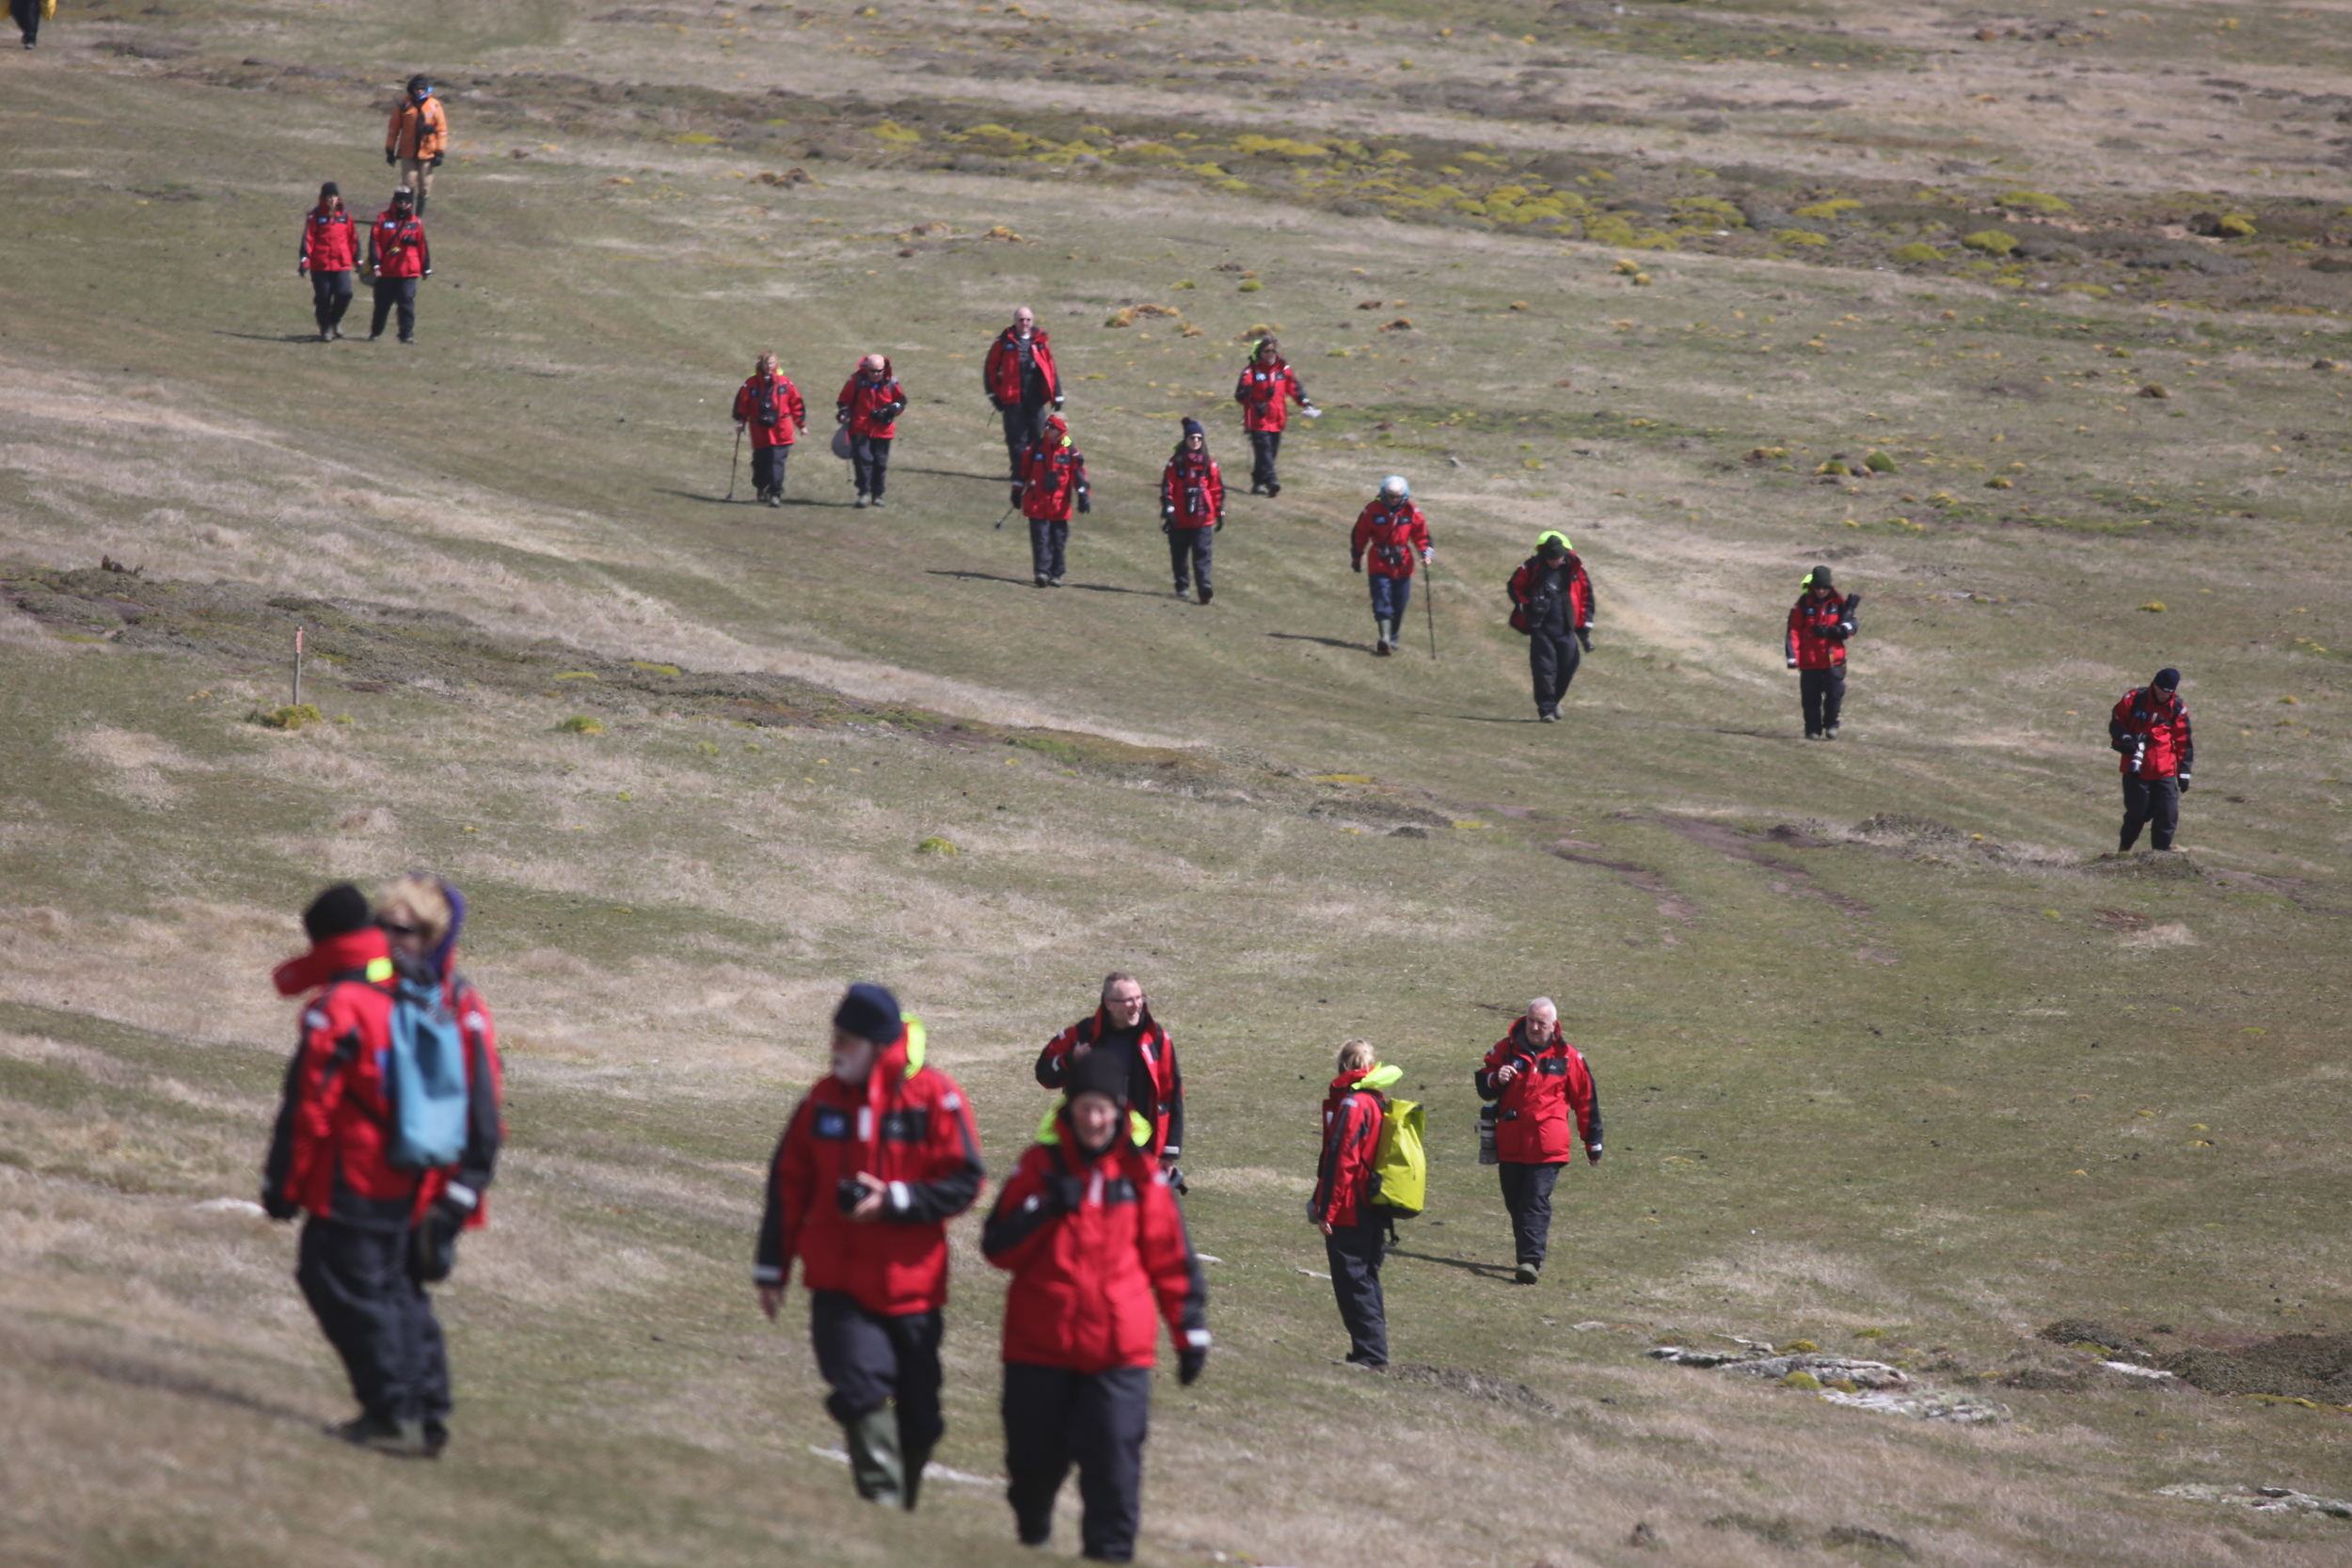 Our flock of red-coated wanderers finally hiked back toward the Zodiacs.